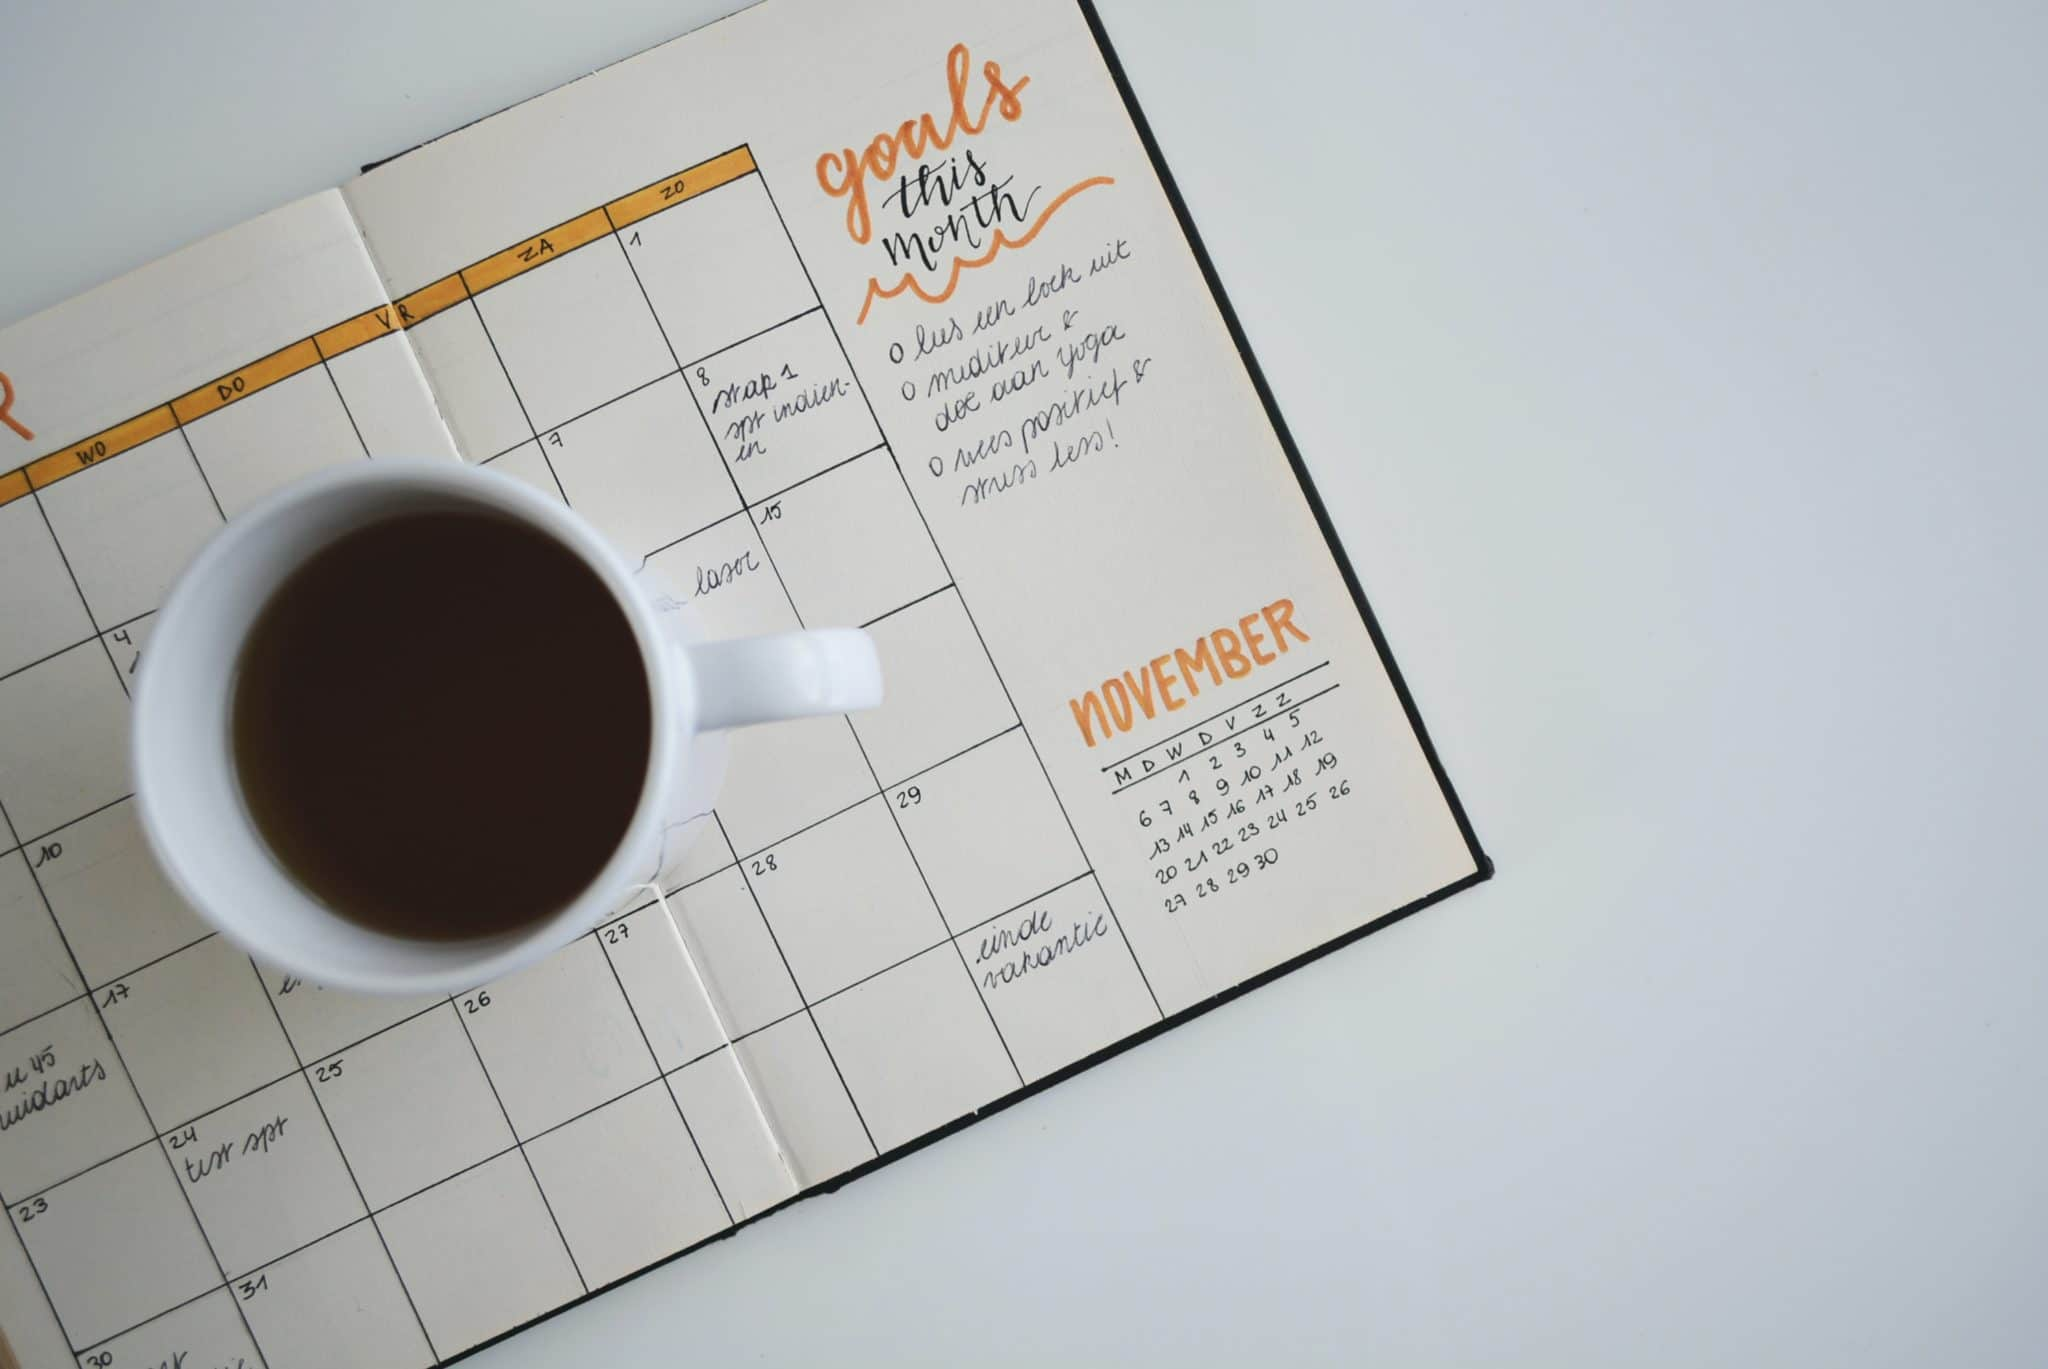 a day planner with a list of goals and a cup of coffee sitting on top